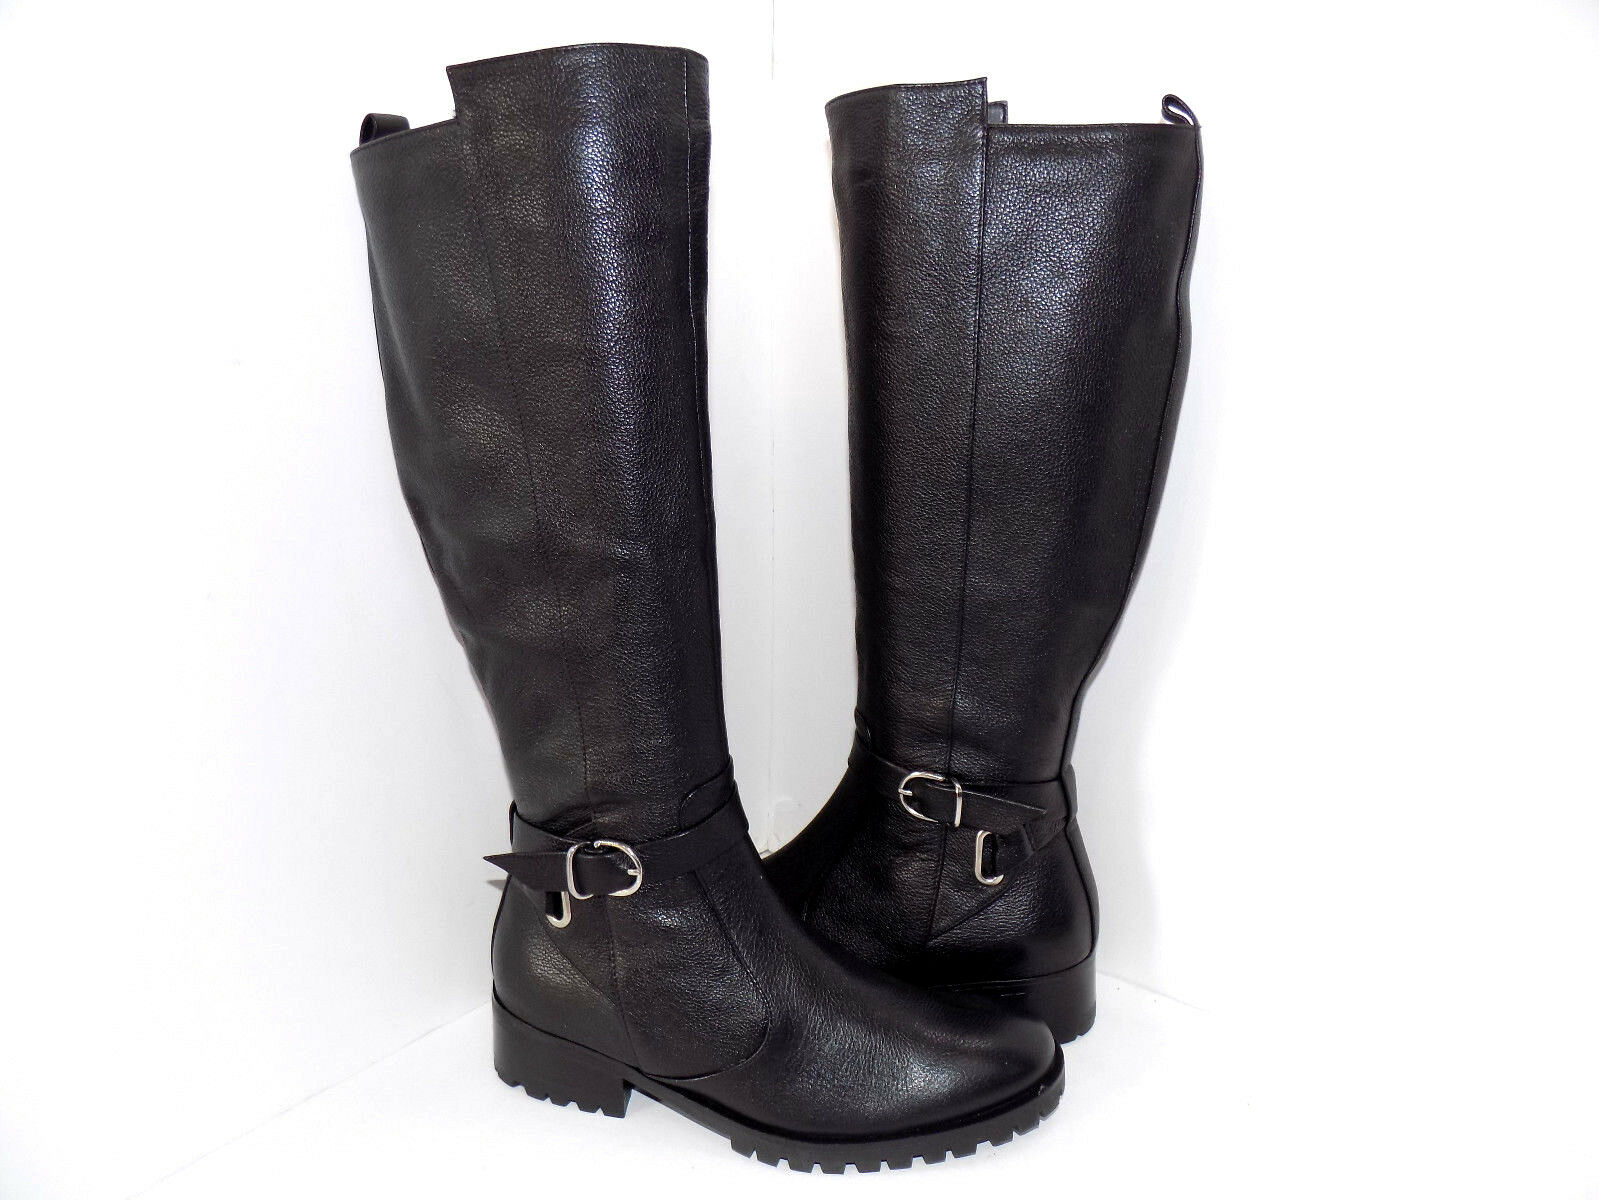 TESORI Women's Valencia Black Lether Riding Knee High Boots Boots